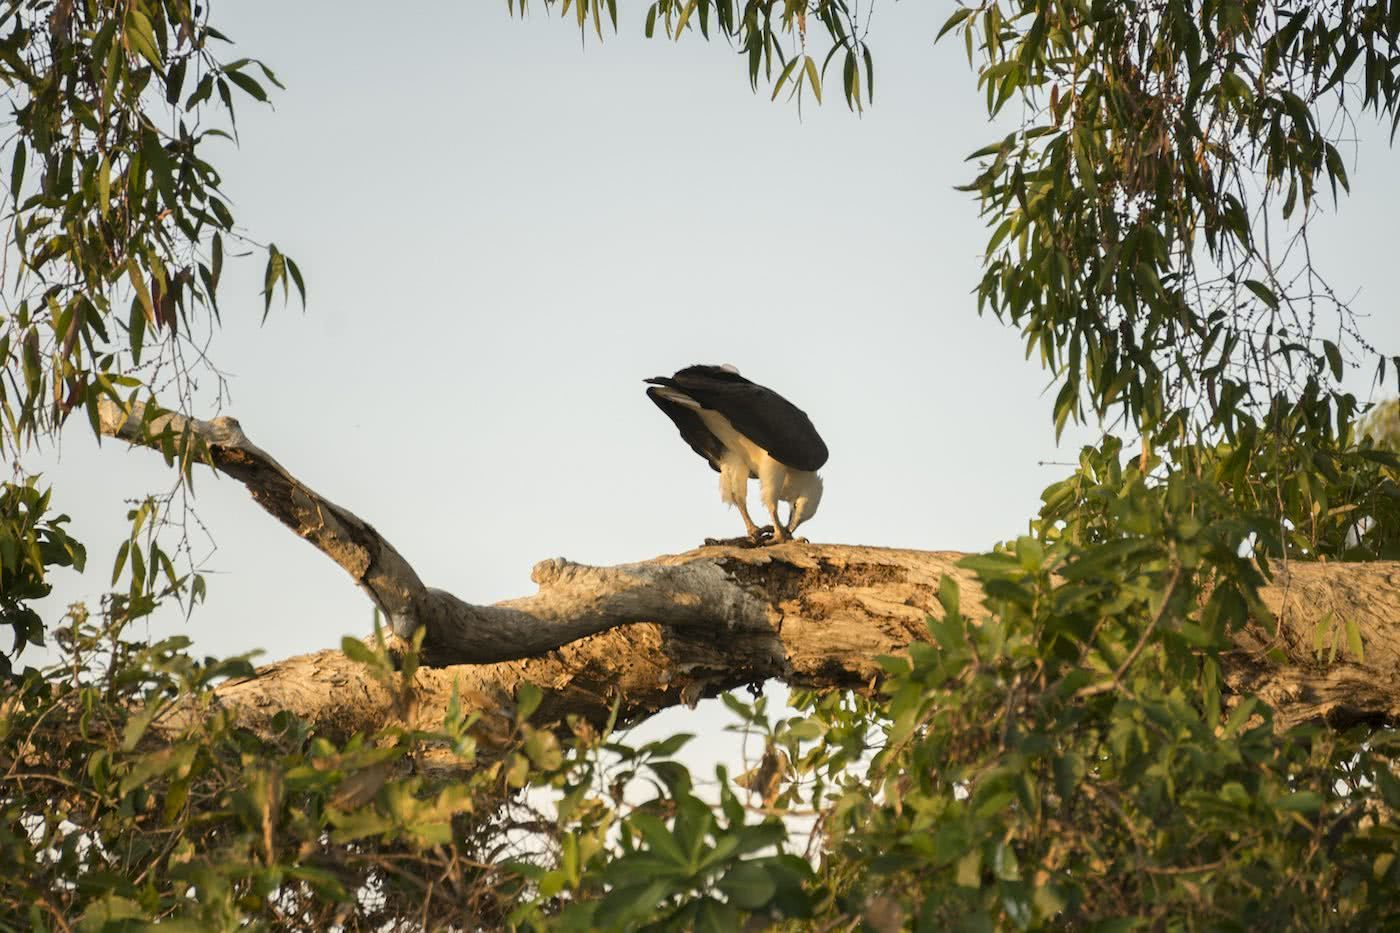 Lewis Burnett, Hunting for Paradise, Kakadu National Park, Photo Essay, eagle, bird